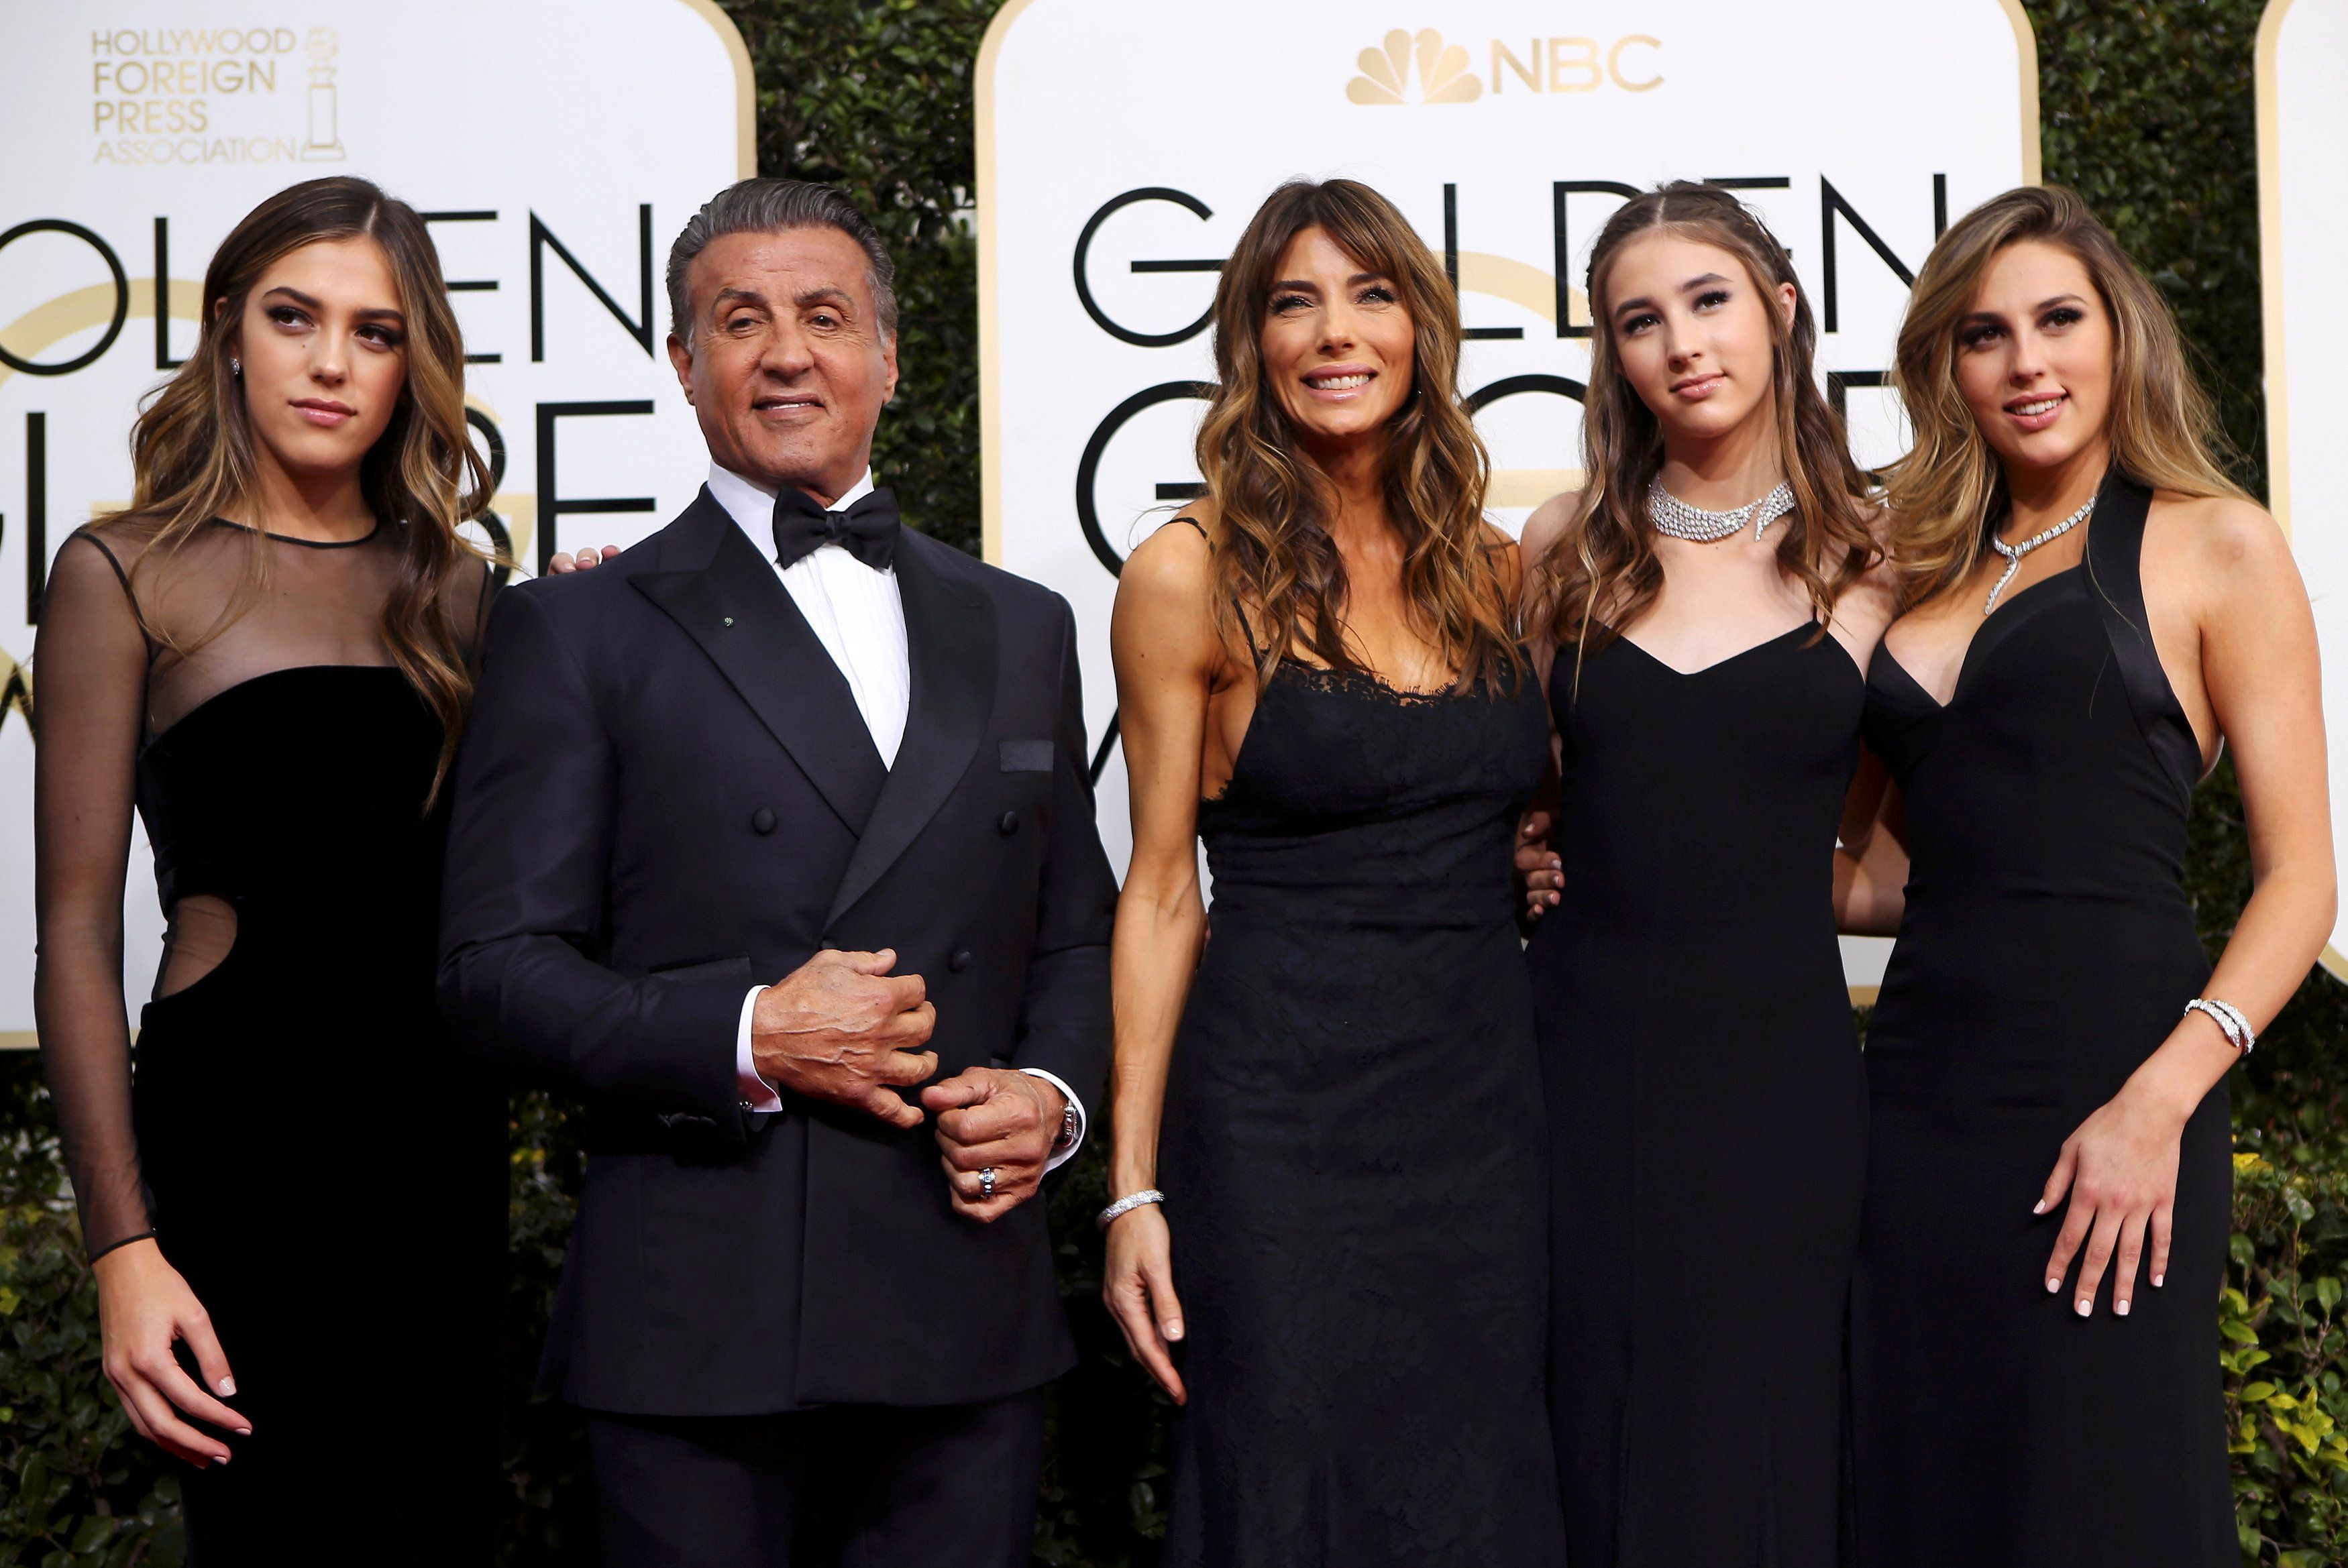 Actor Sylvester Stallone poses with his wife Jennifer Flavin (C), and their daughters, Sistine Stallone (L), Scarlet Stallone